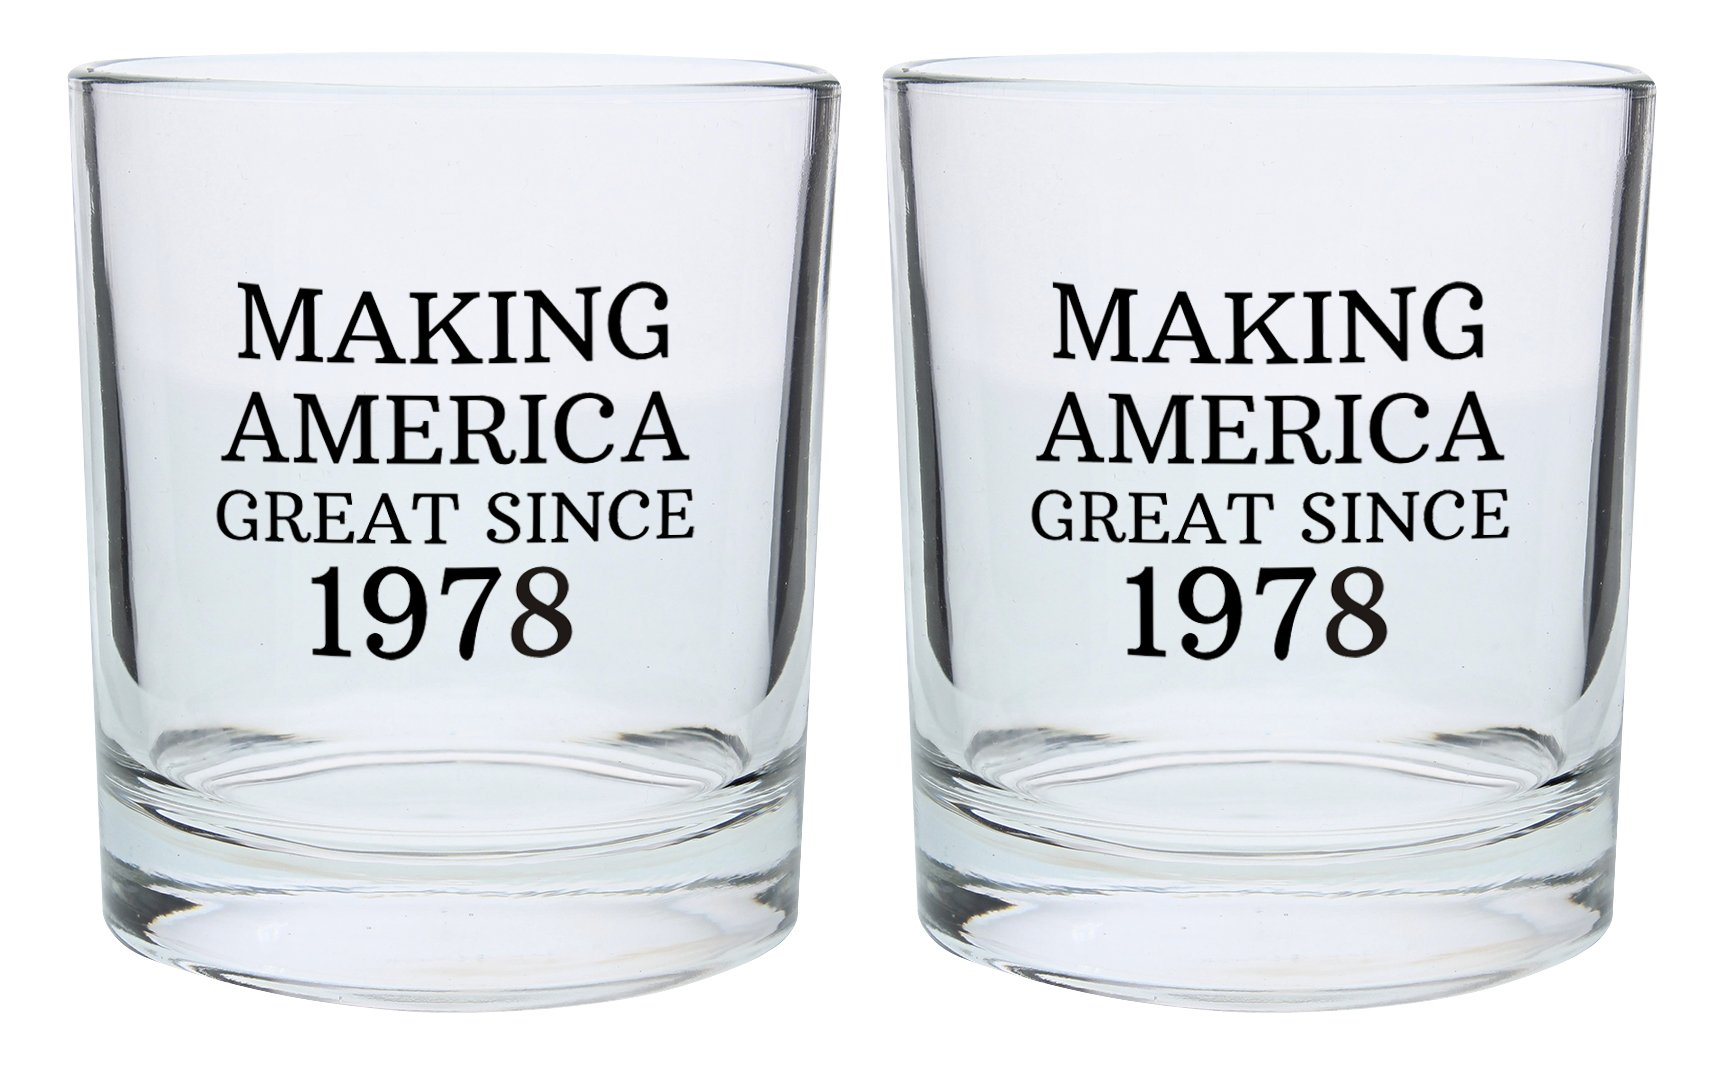 40th Birthday Gifts for Dad Mom Making America Great Since 1978 Republican Conservative 40th Birthday Party Supplies Gift Lowball Glasses 2-Pack Round Lowball Tumbler Set Black